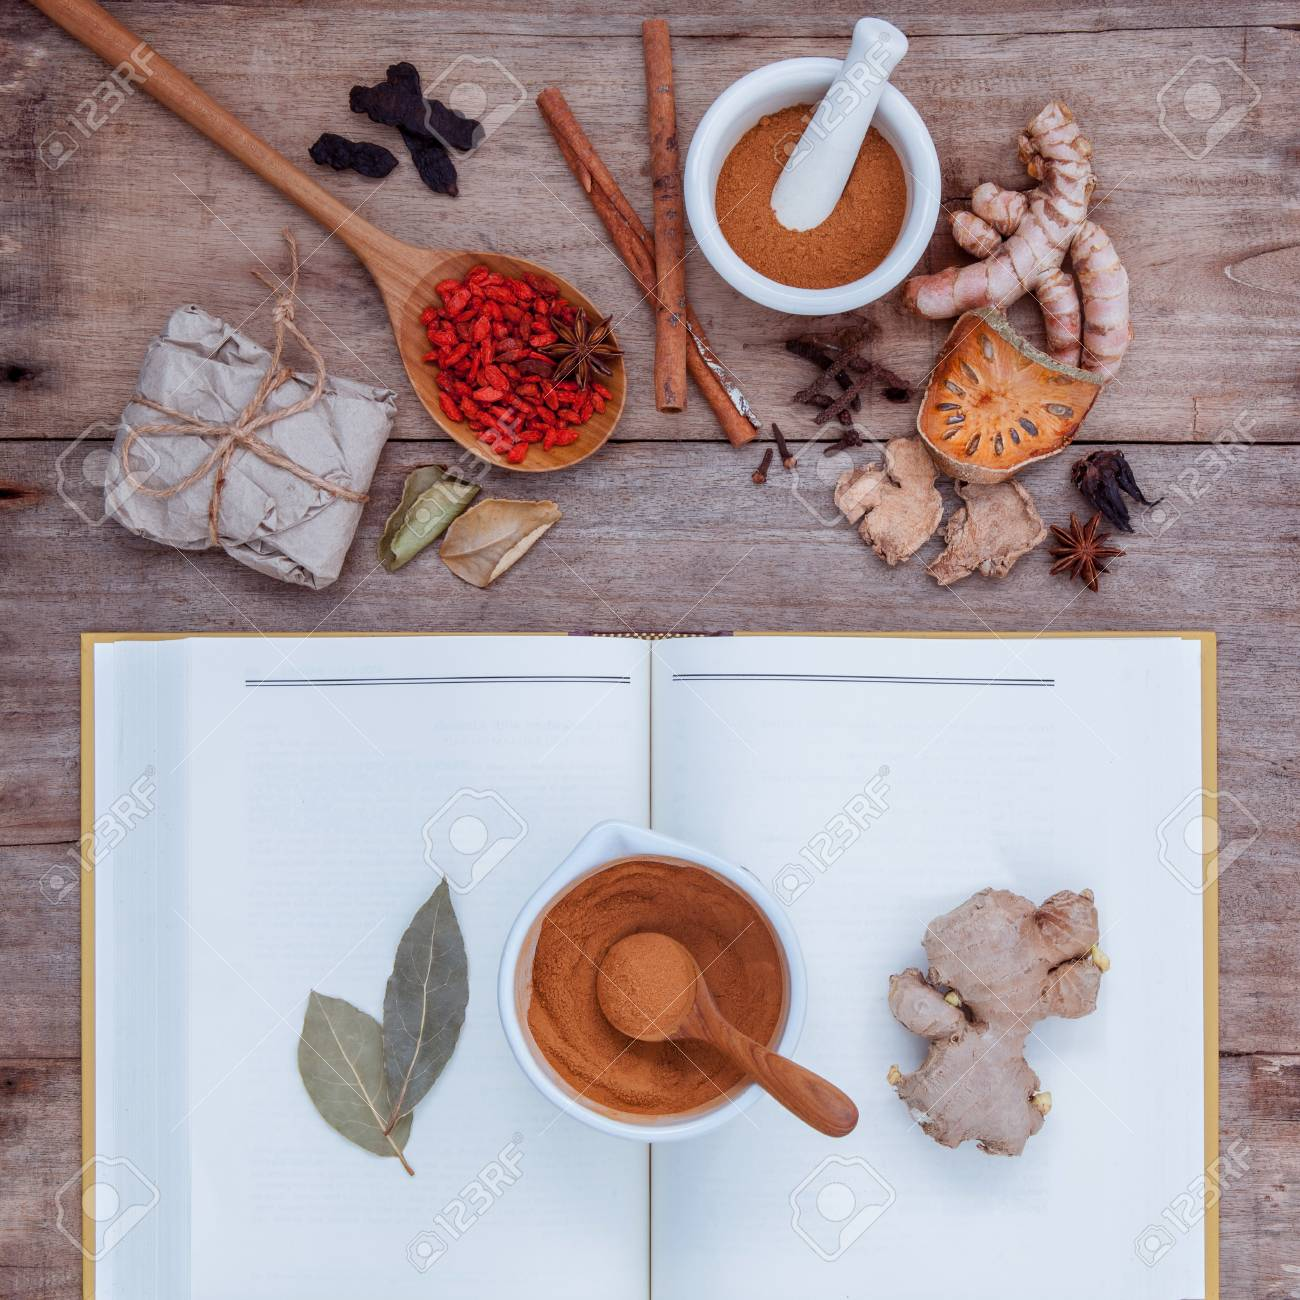 Alternative health care dried various Chinese herbs in wooden spoon with mortar on old wooden background. - 51659591